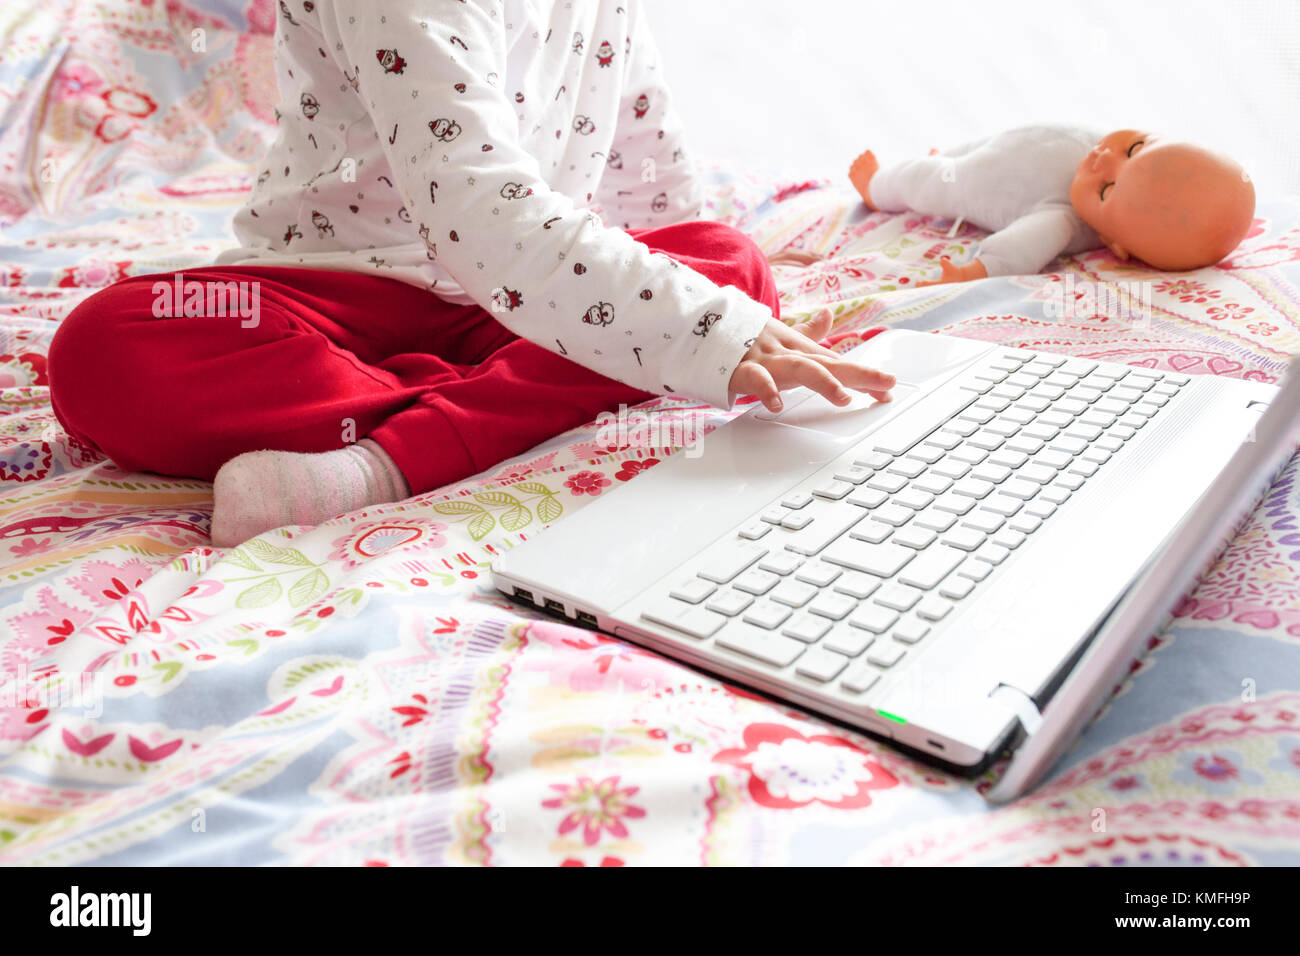 Little girl sitting in bed and surfing on Internet in her bedroom. Parental control concept - Stock Image